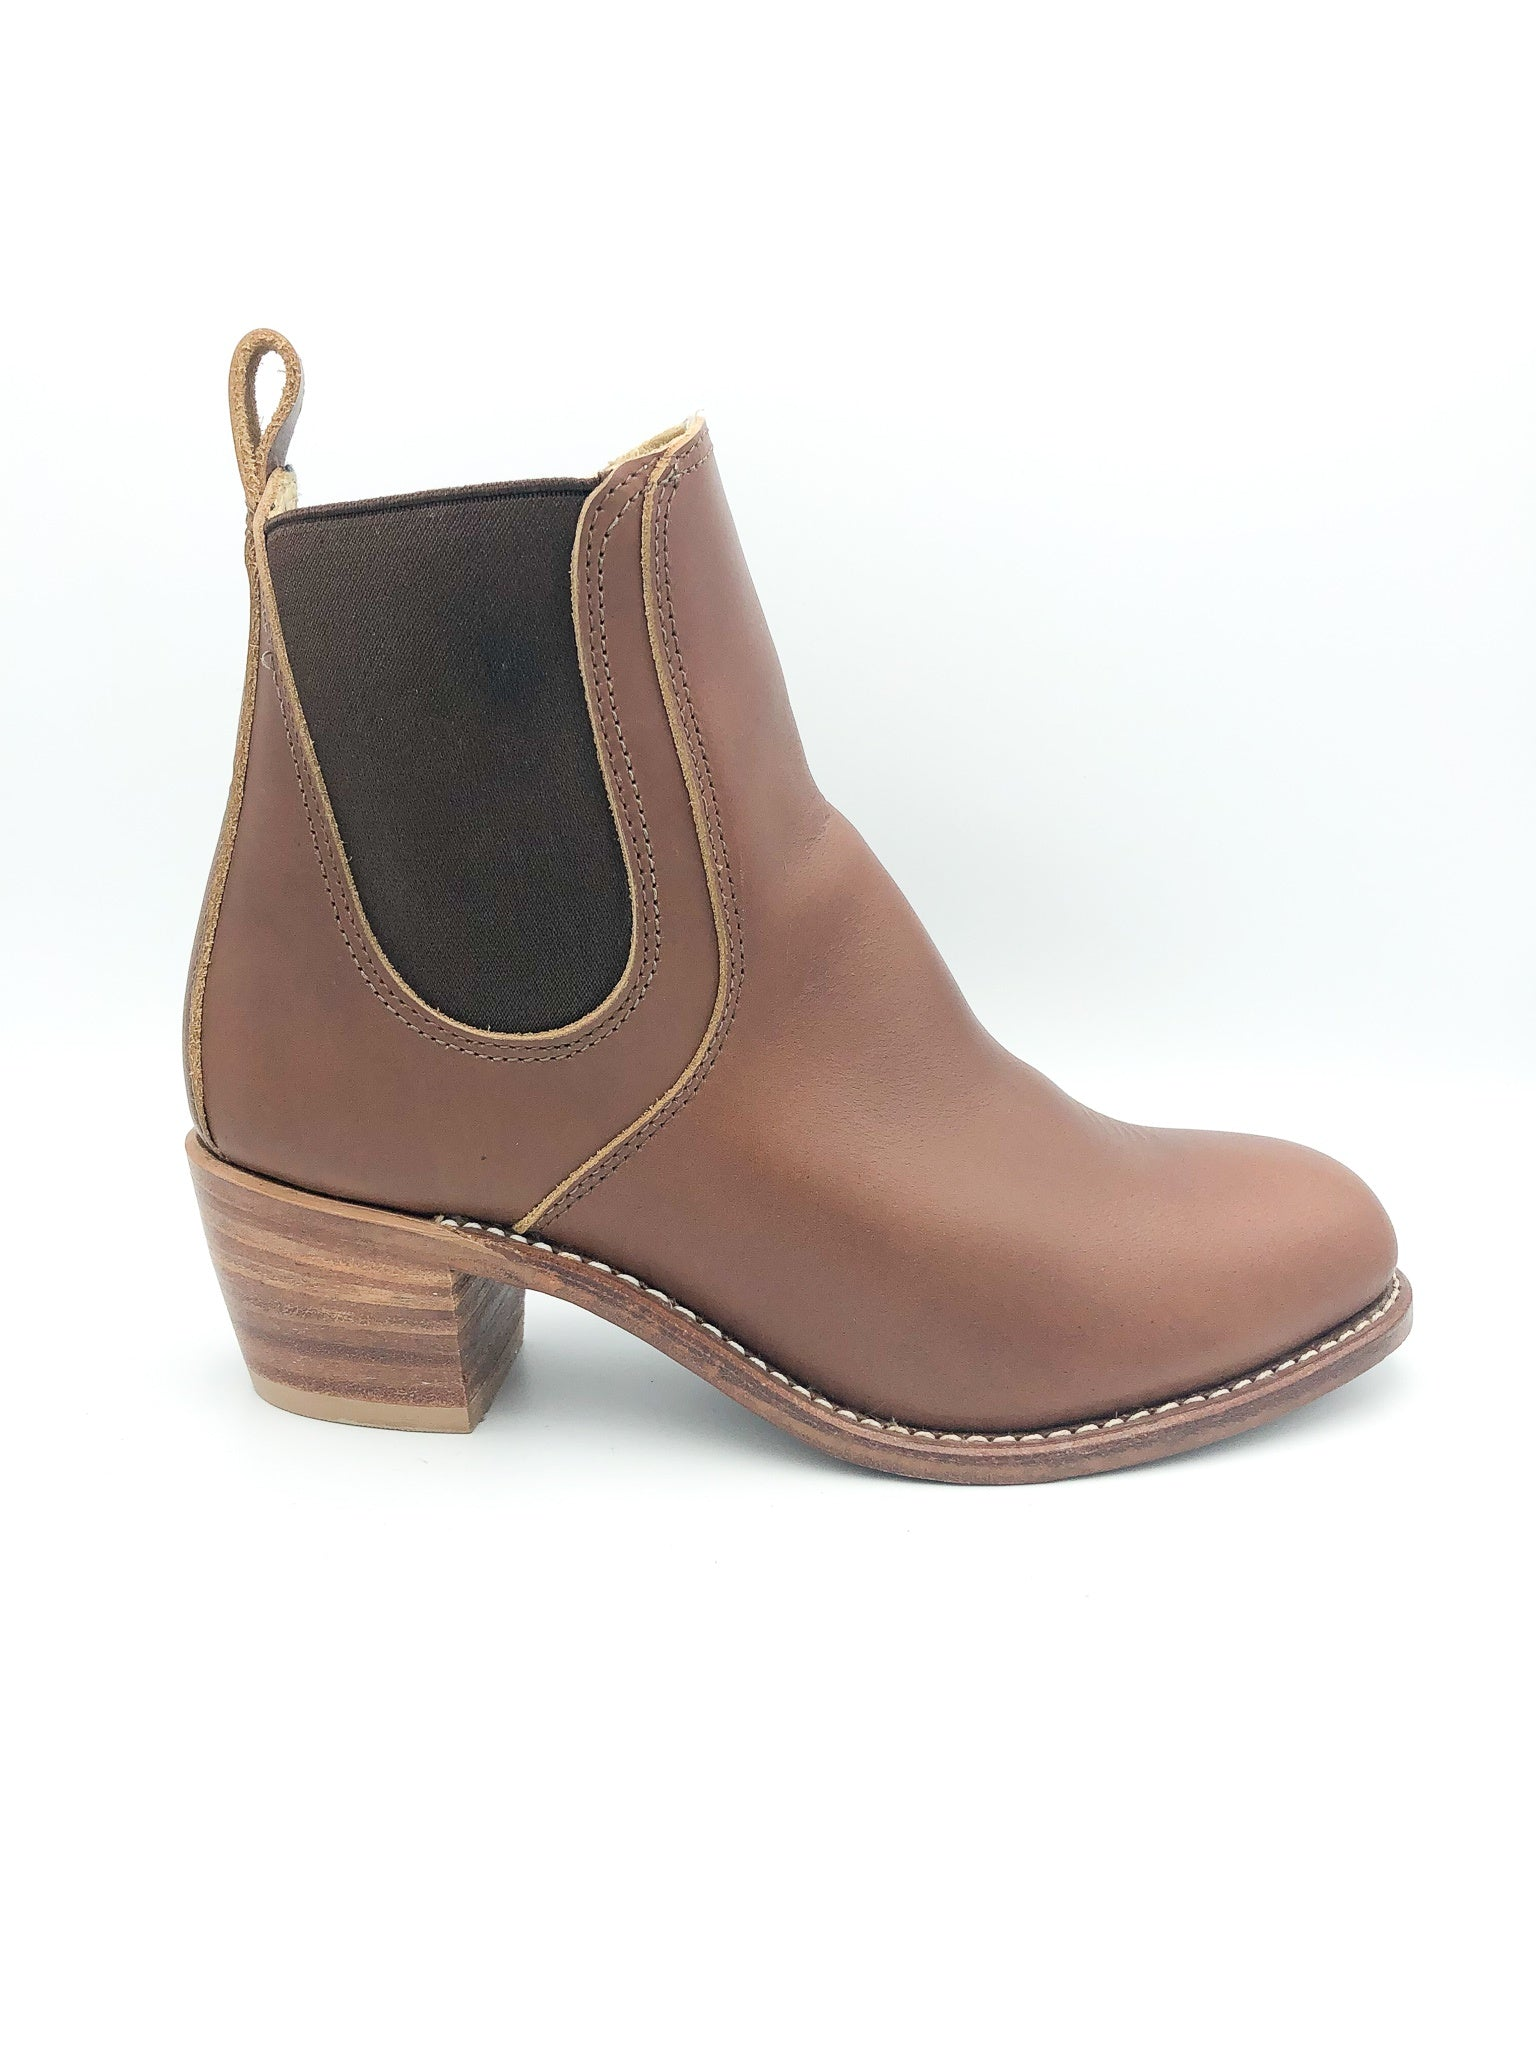 RED WING - WOMEN'S HARRIET IN COGNAC EXCALIBUR